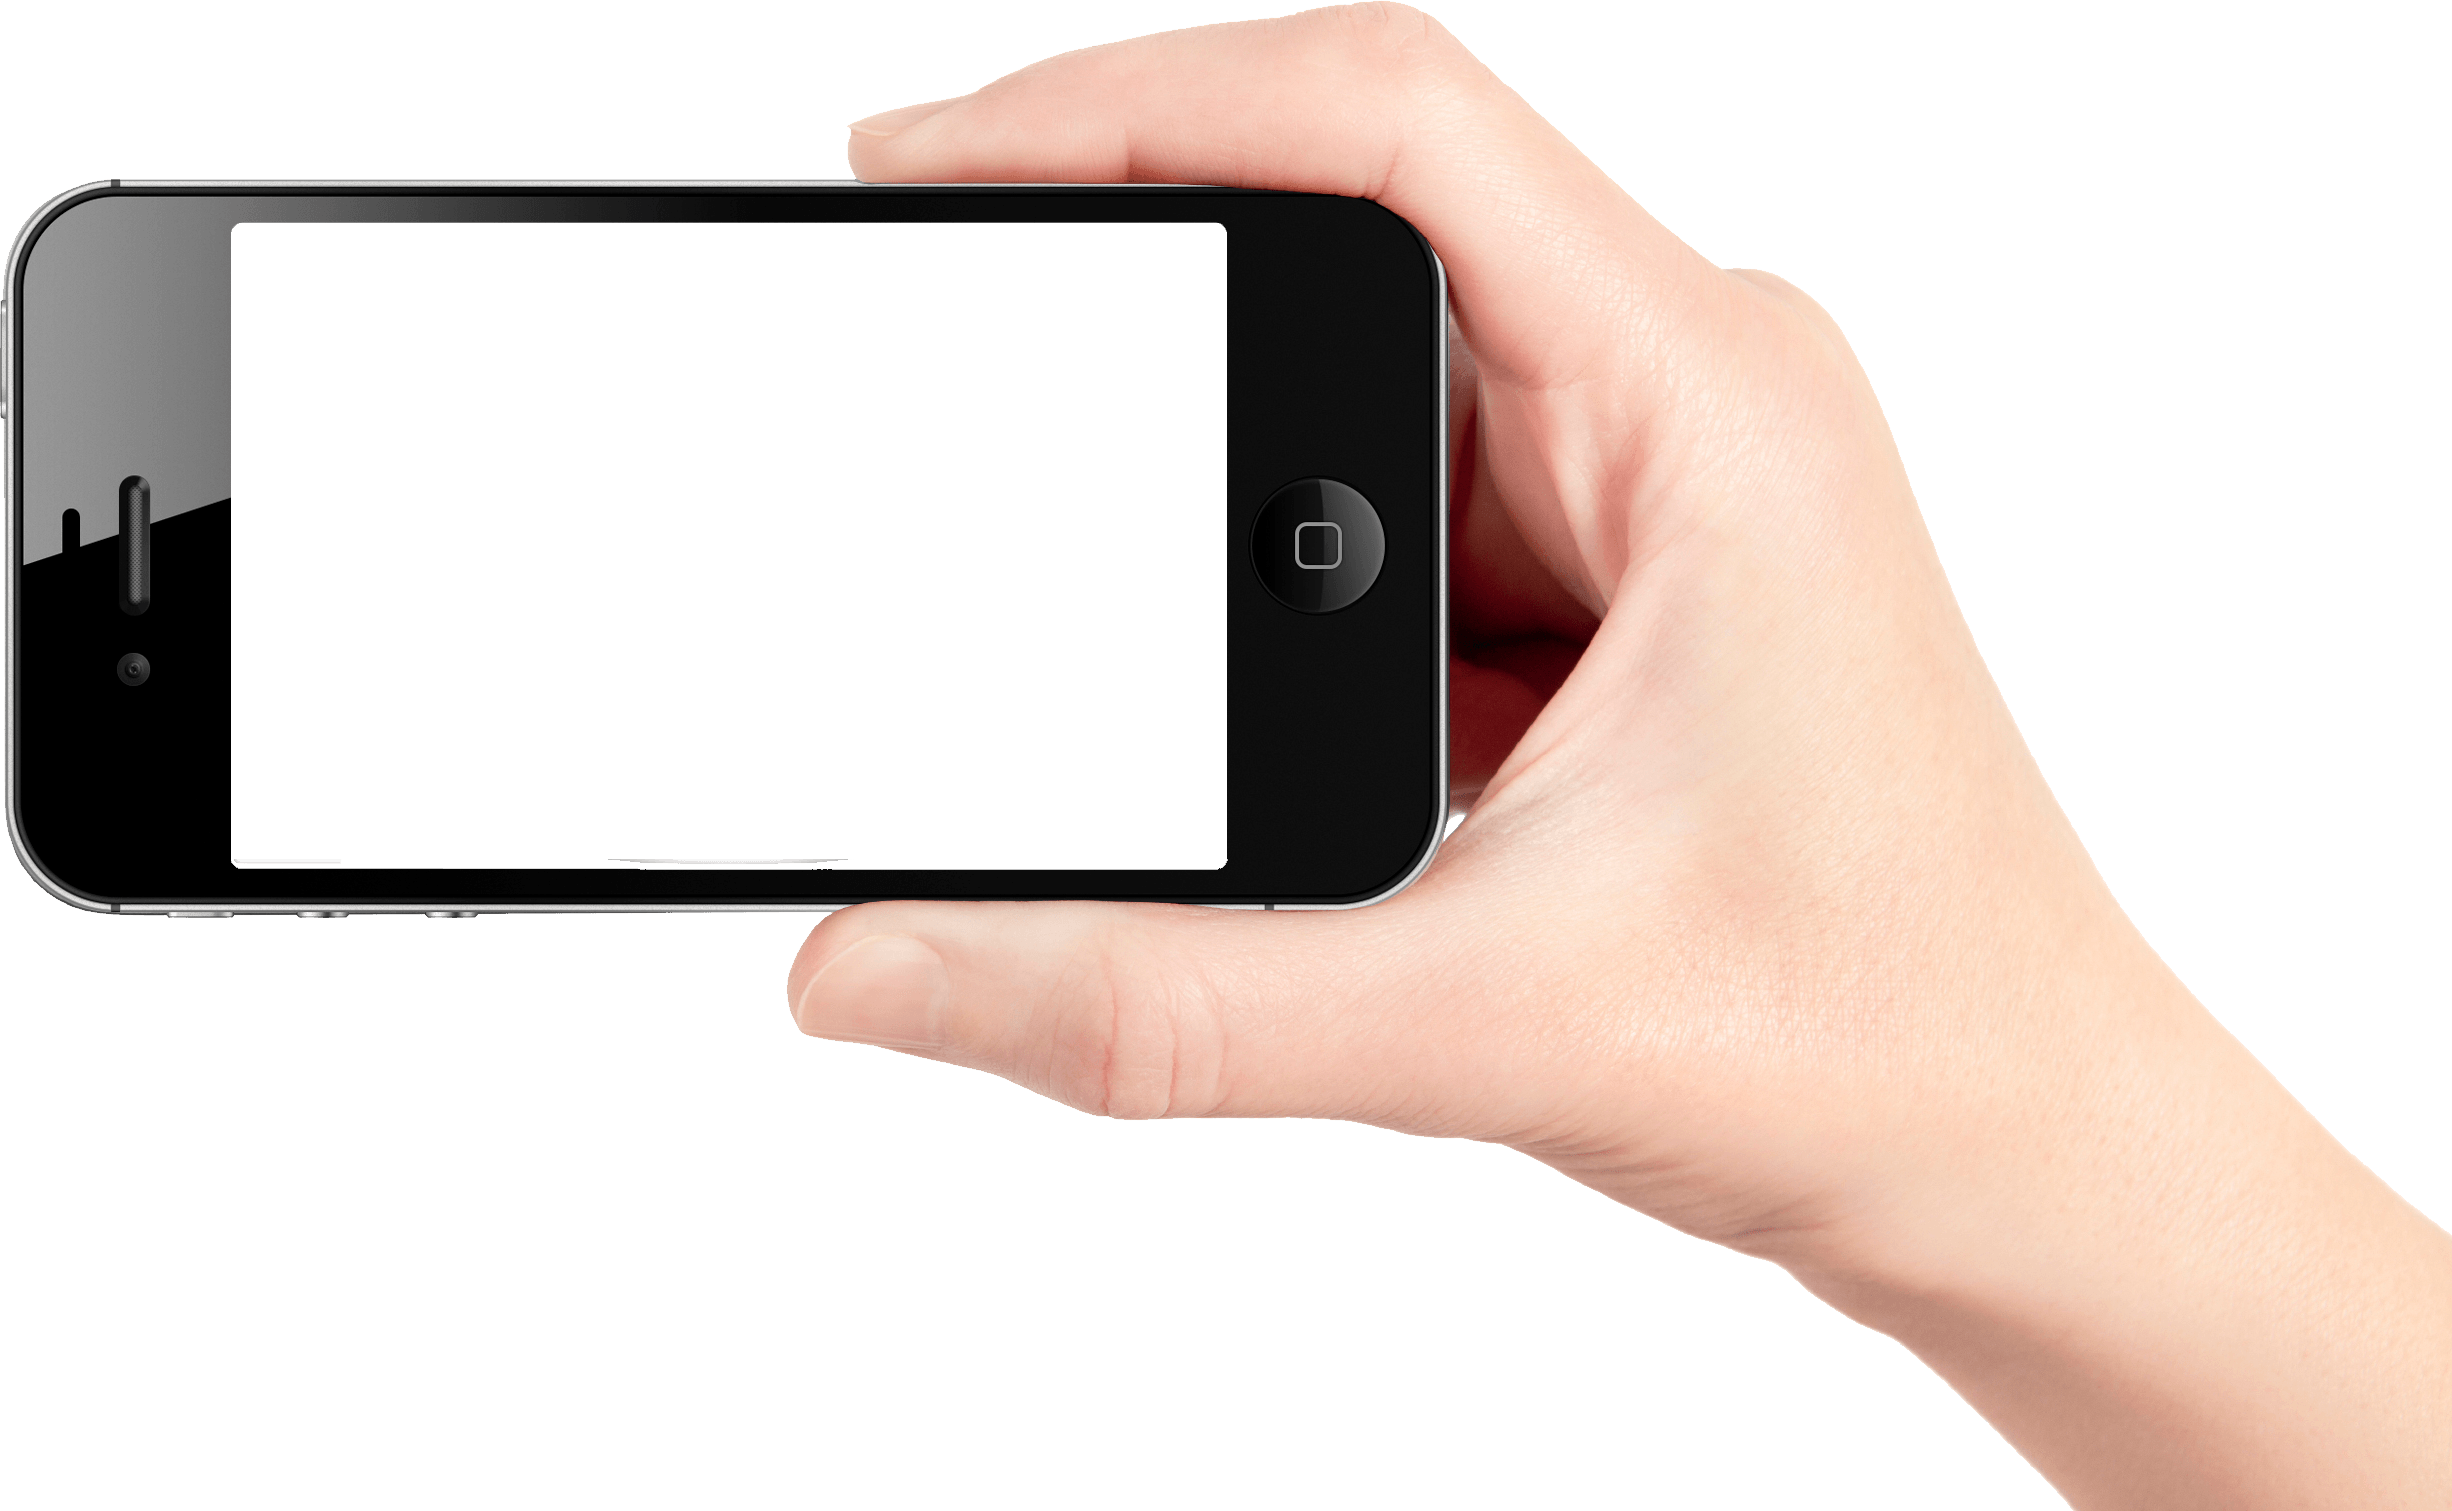 Phone in png image. Hand clipart smartphone